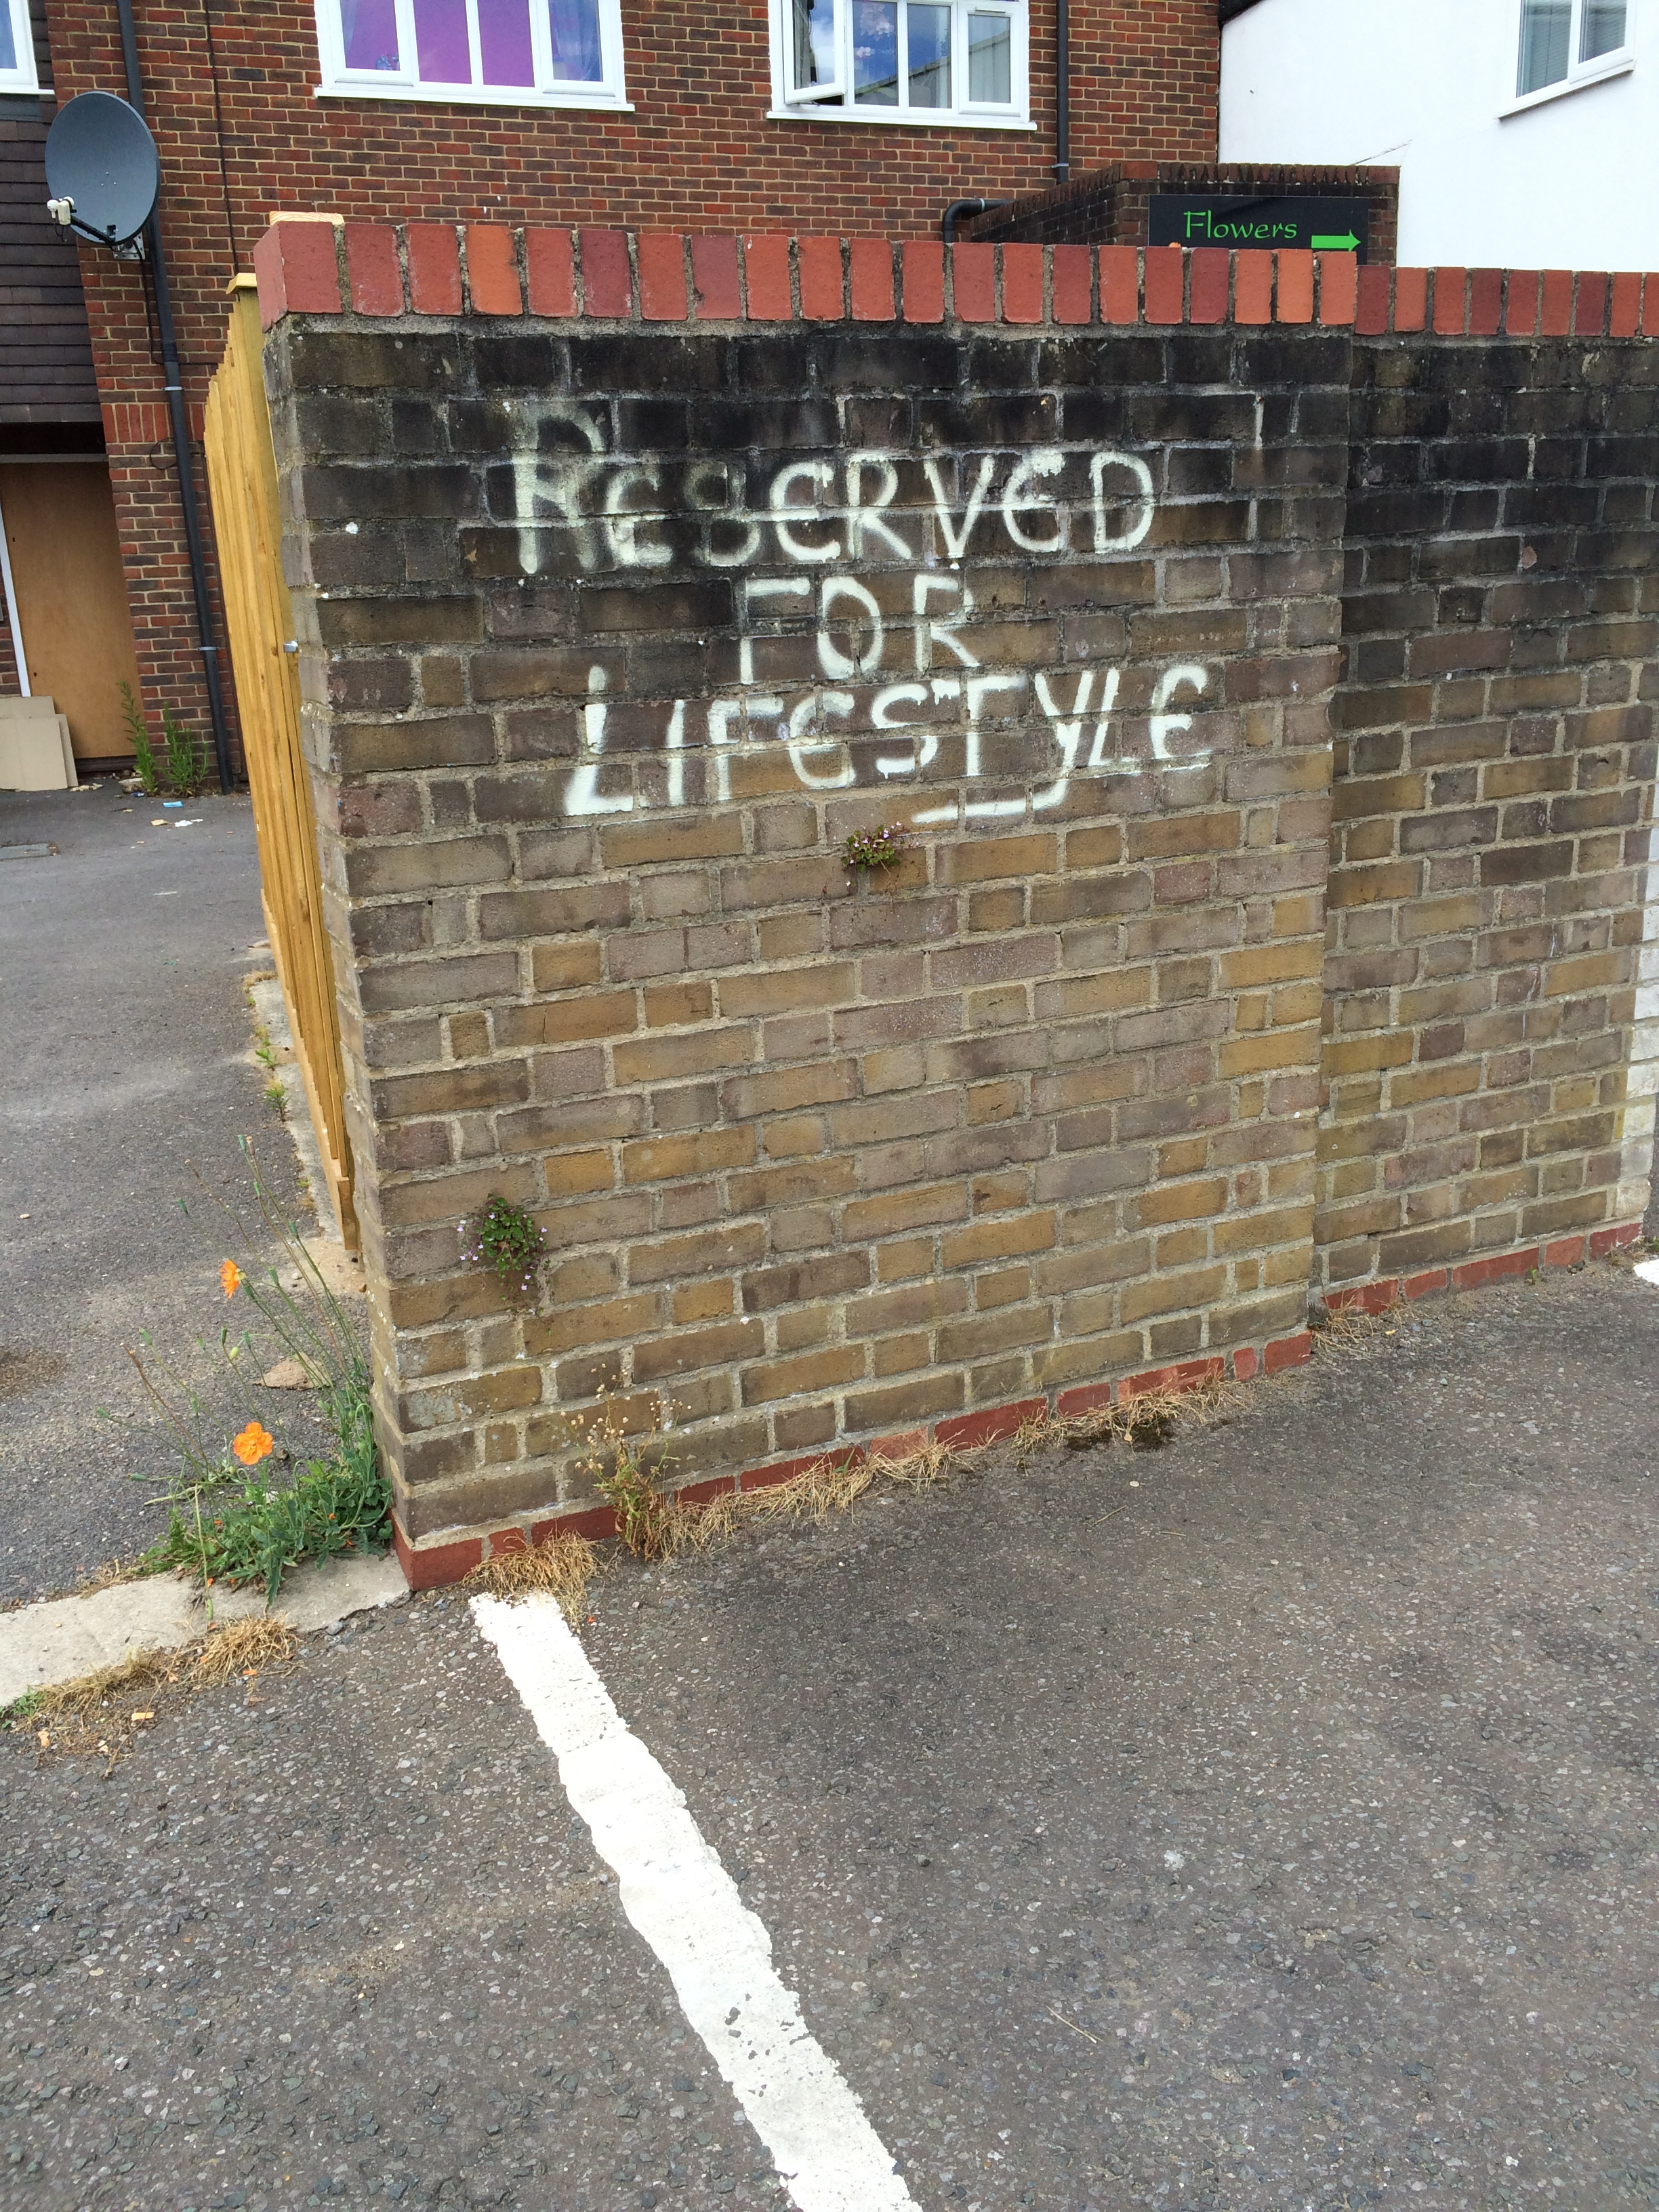 Reserved for Lifestyle